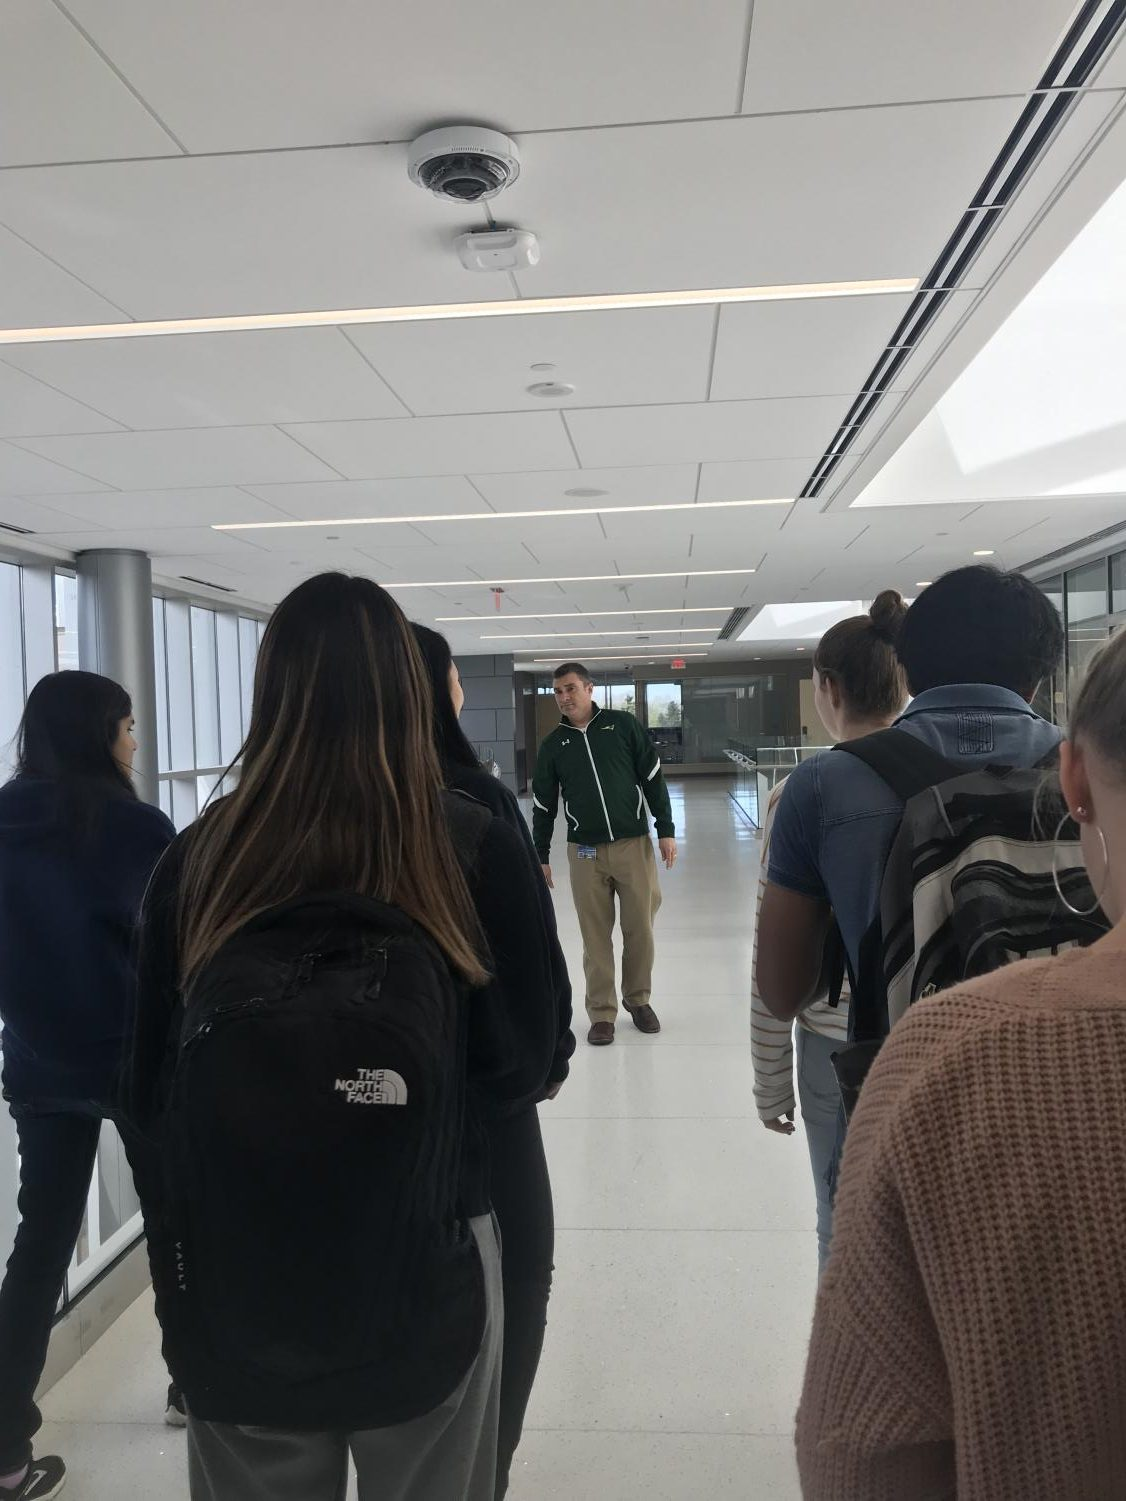 Students follow Mr.Gobble one of the main hallways of the new addition to the East Building. Classes are set to start in the new addition in fall of 2019. 